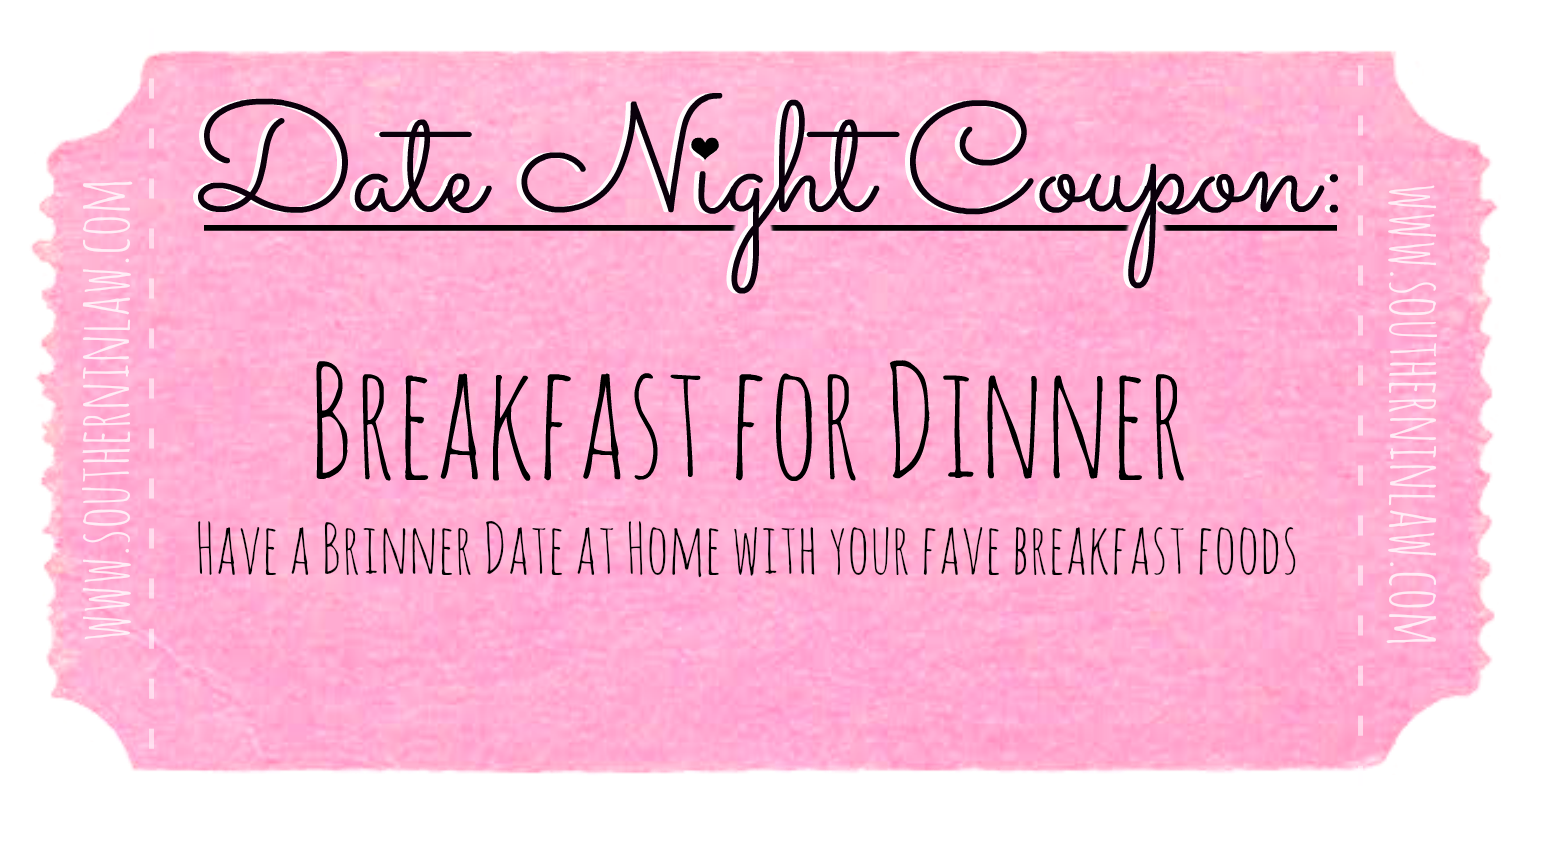 Affordable Date Ideas - Cheap Date Ideas Coupons - Have Breakfast for Dinner